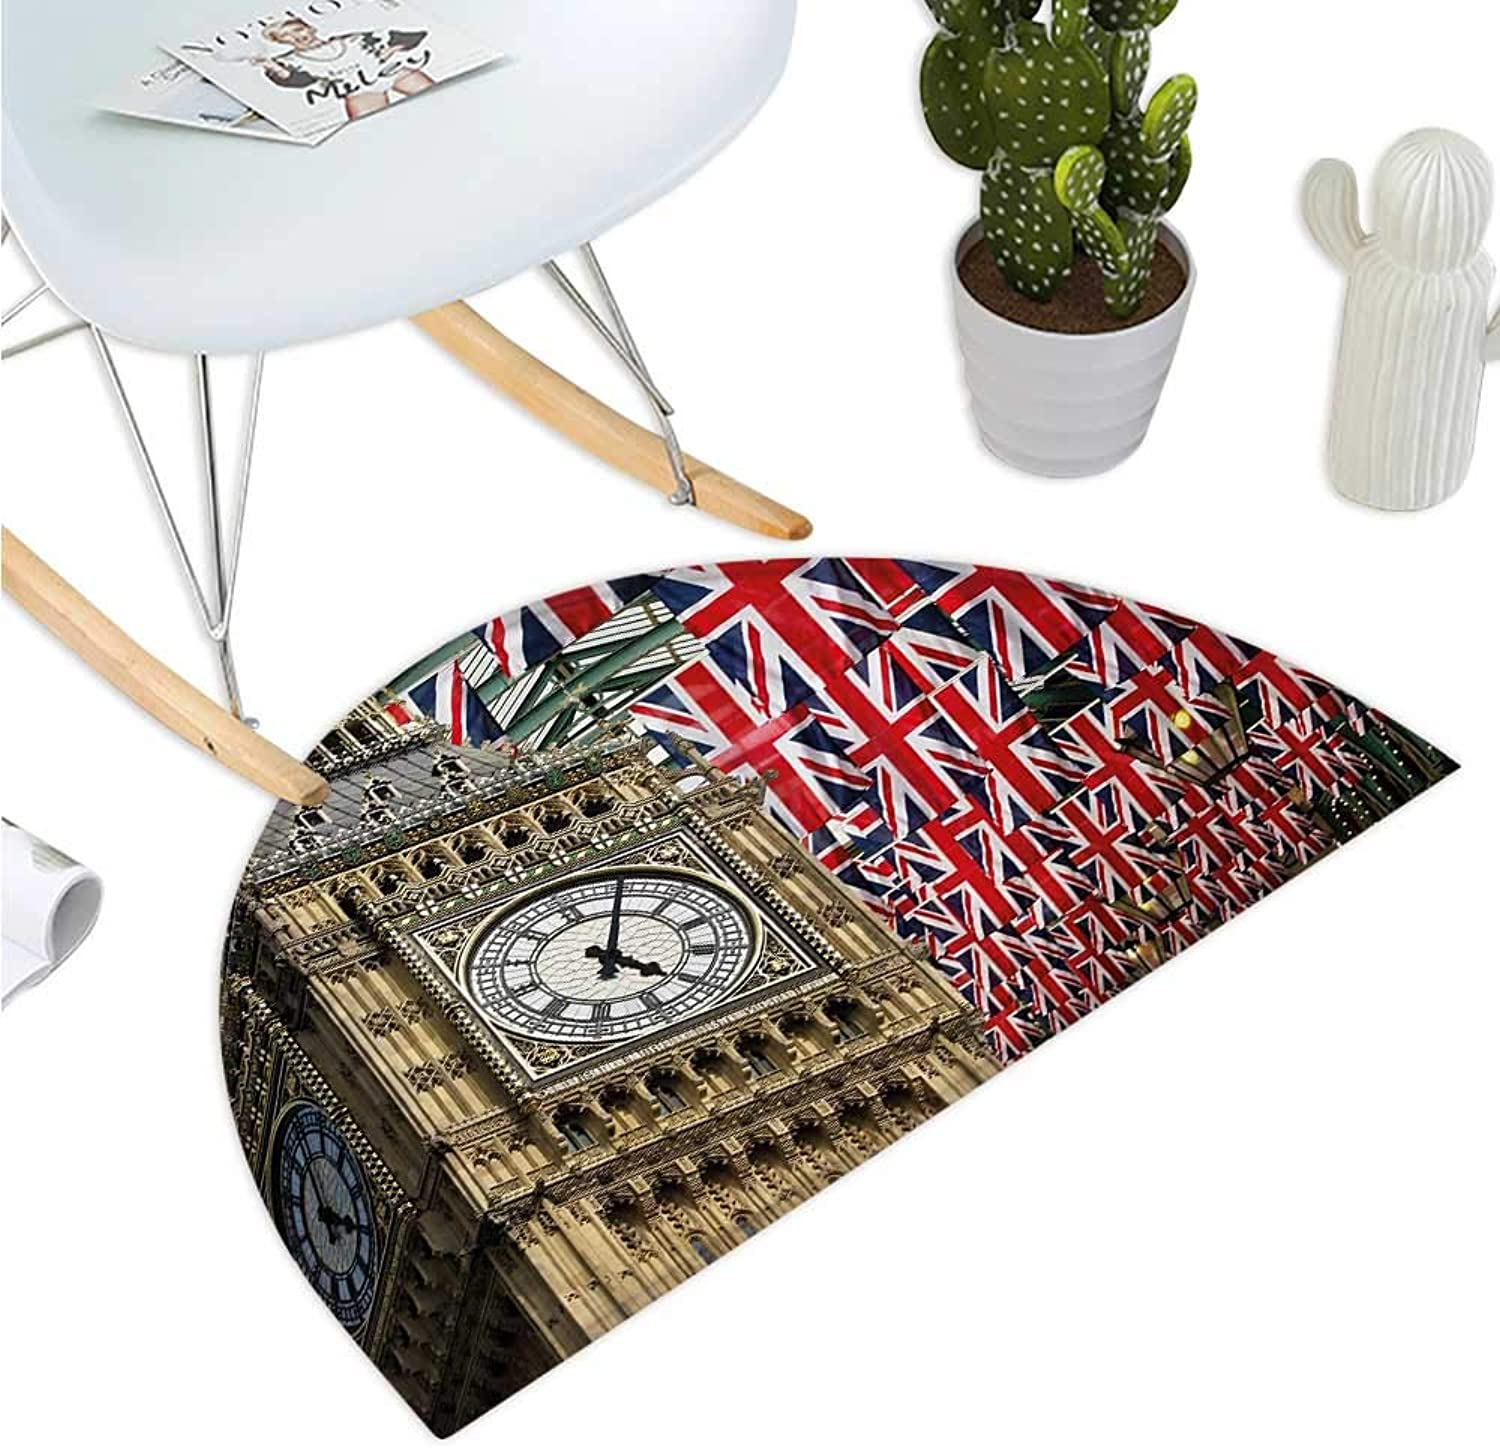 Union Jack Semicircle Doormat UK Flags Background with Big Ben Festive Celebrations Loyalty Halfmoon doormats H 39.3  xD 59  Pale Coffee Navy bluee Red